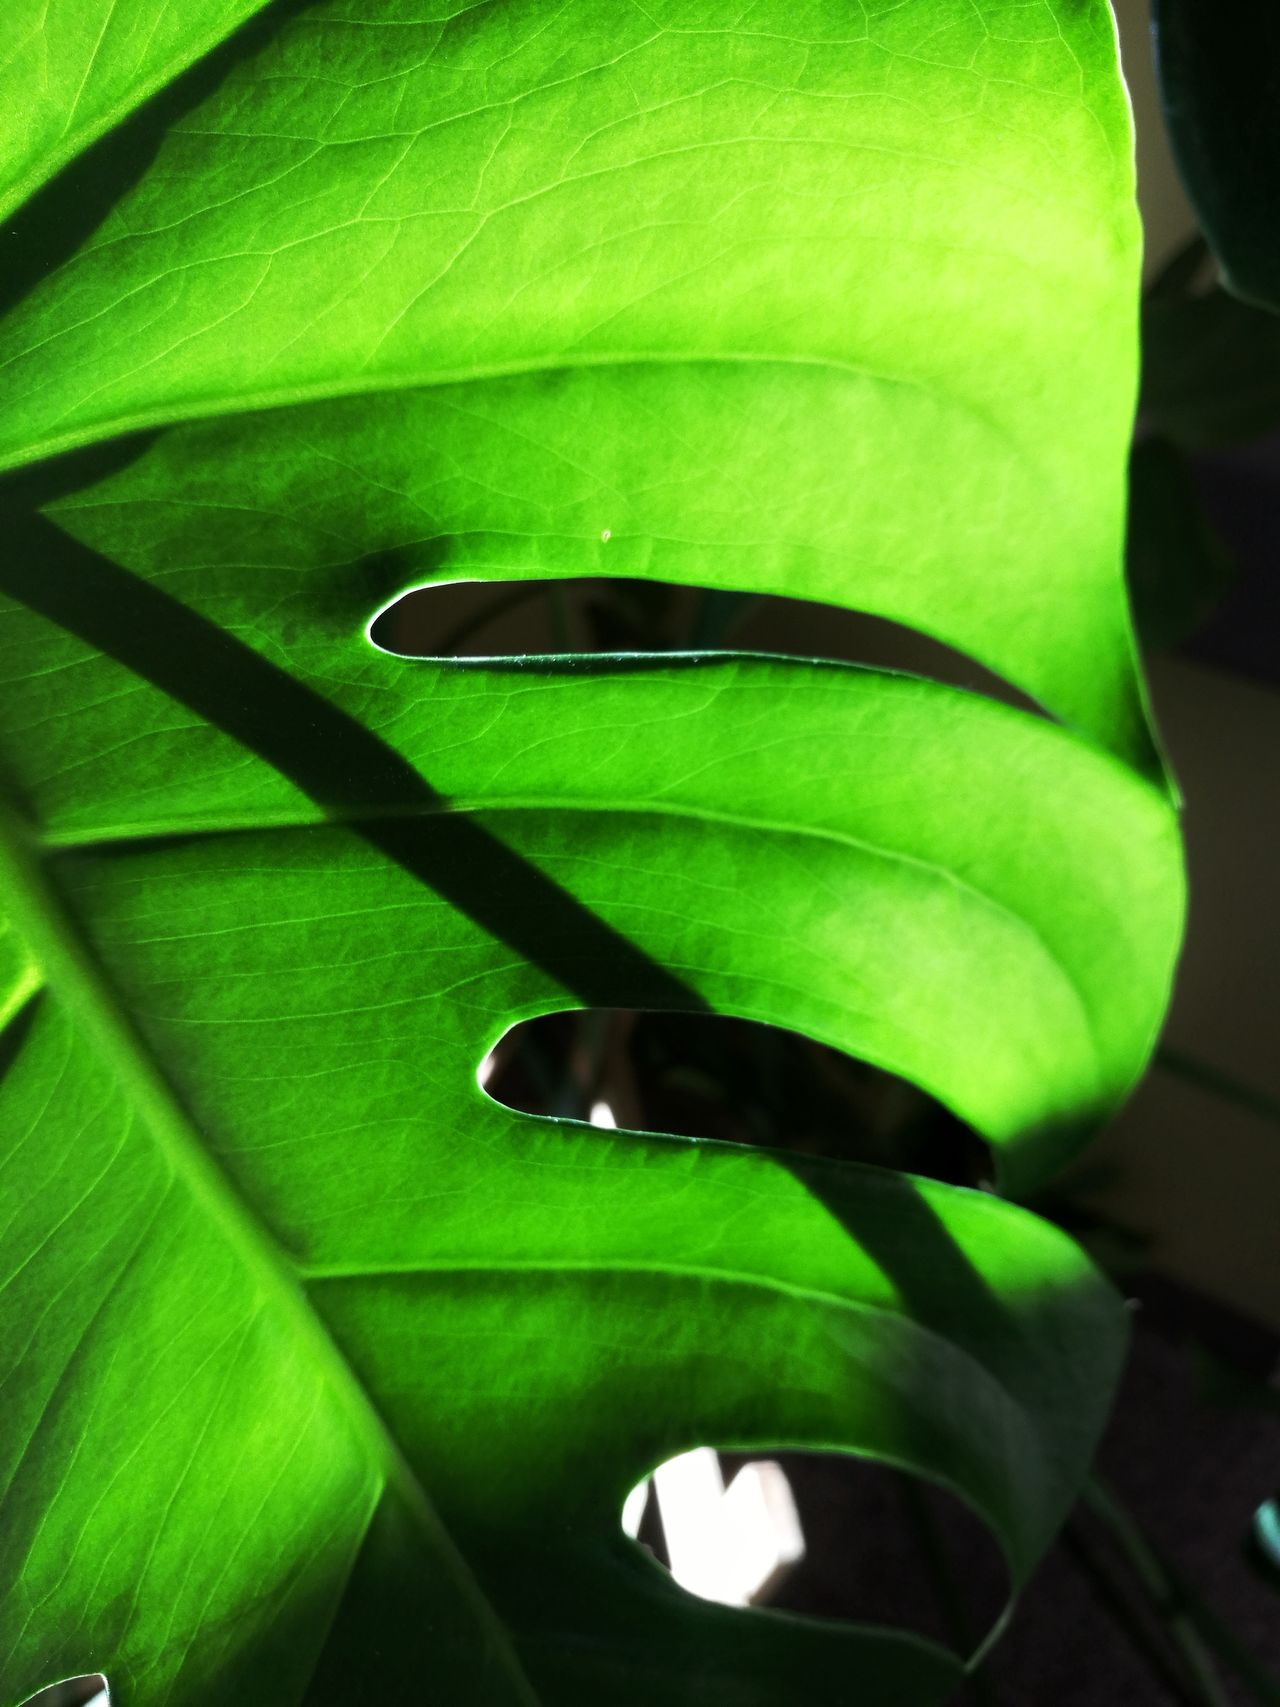 nr.87Green Color Leaf Close-up No People Biology Growth One Animal Nature Freshness Indoors  TheWeekOnEyeEMDay Monster Green Monsters Beauty In Nature Growing Plants Green Nature Green Plant Plants And Garden Freshness Nature Plant Green Color Growing